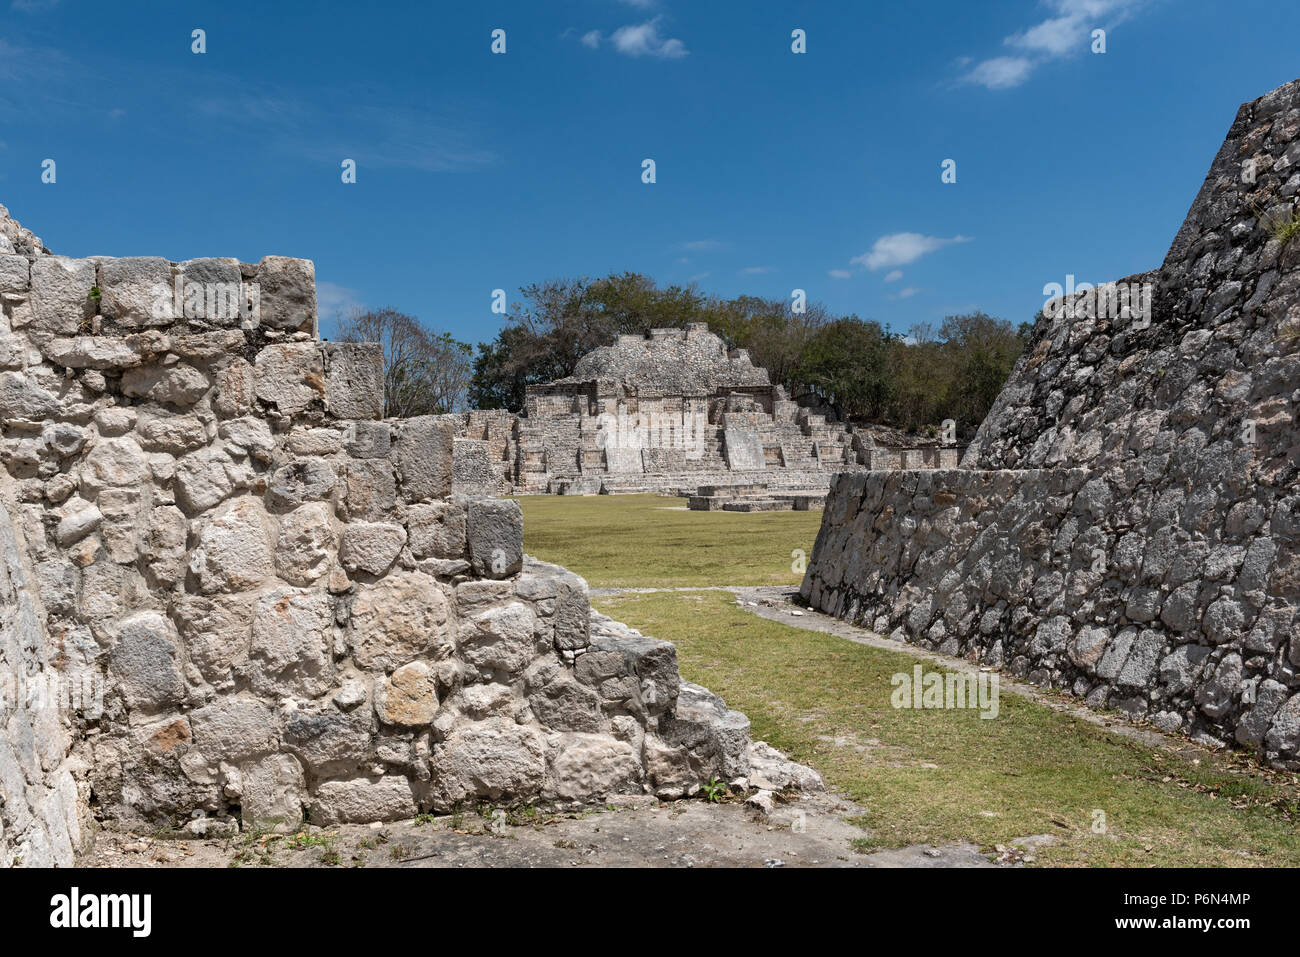 Ruins of the ancient Mayan city of Edzna near campeche, mexico Stock Photo